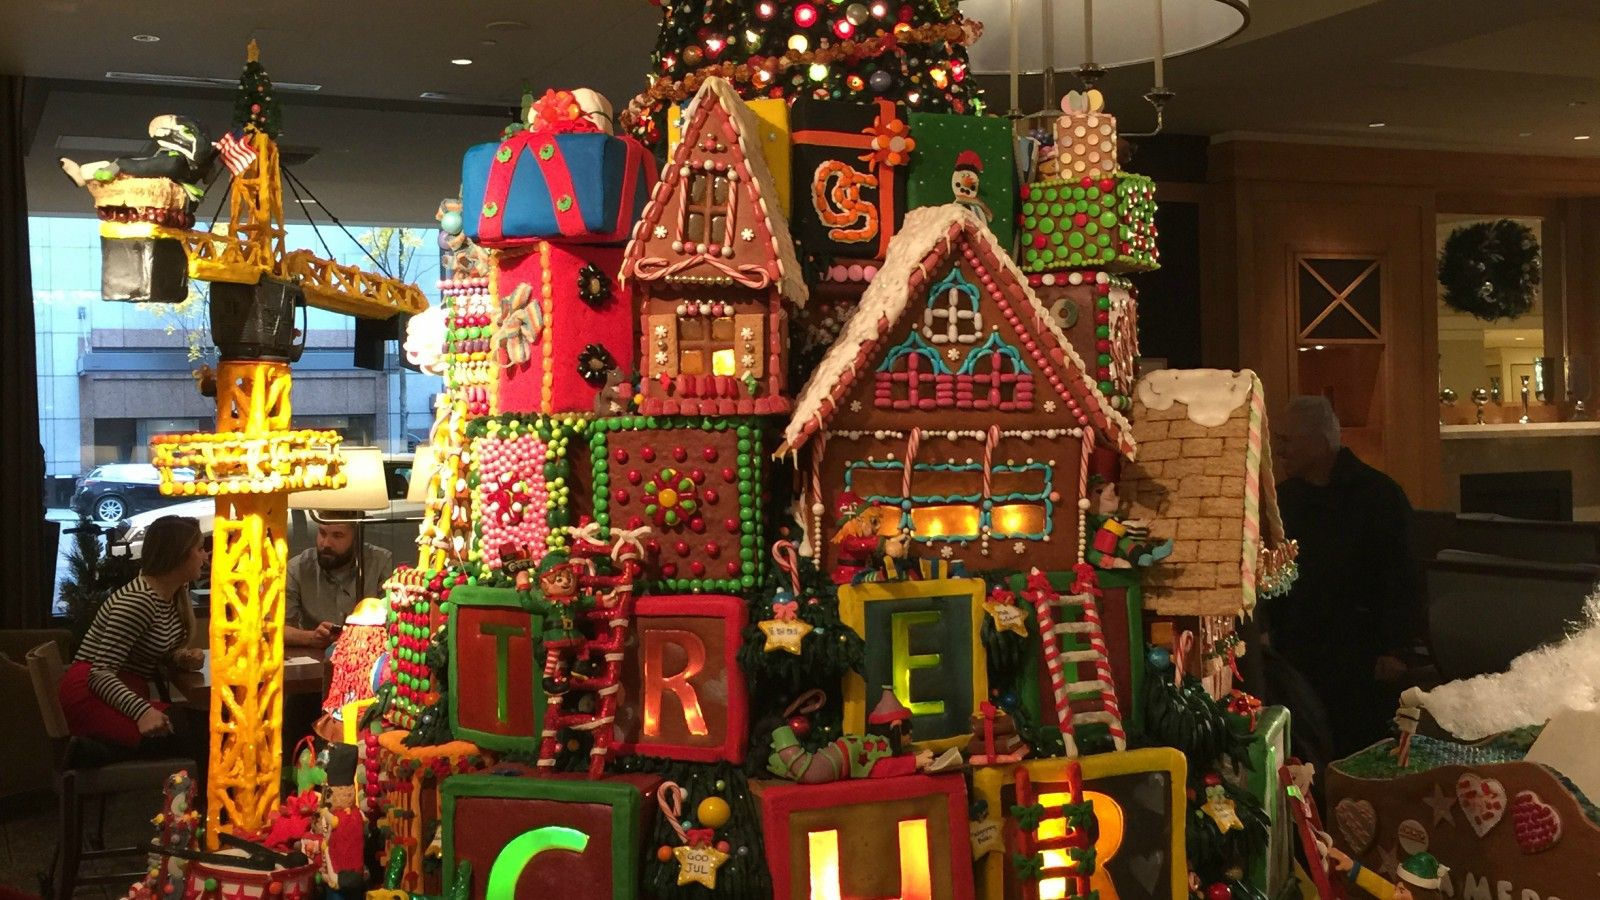 The Sheraton's Gingerbread Village